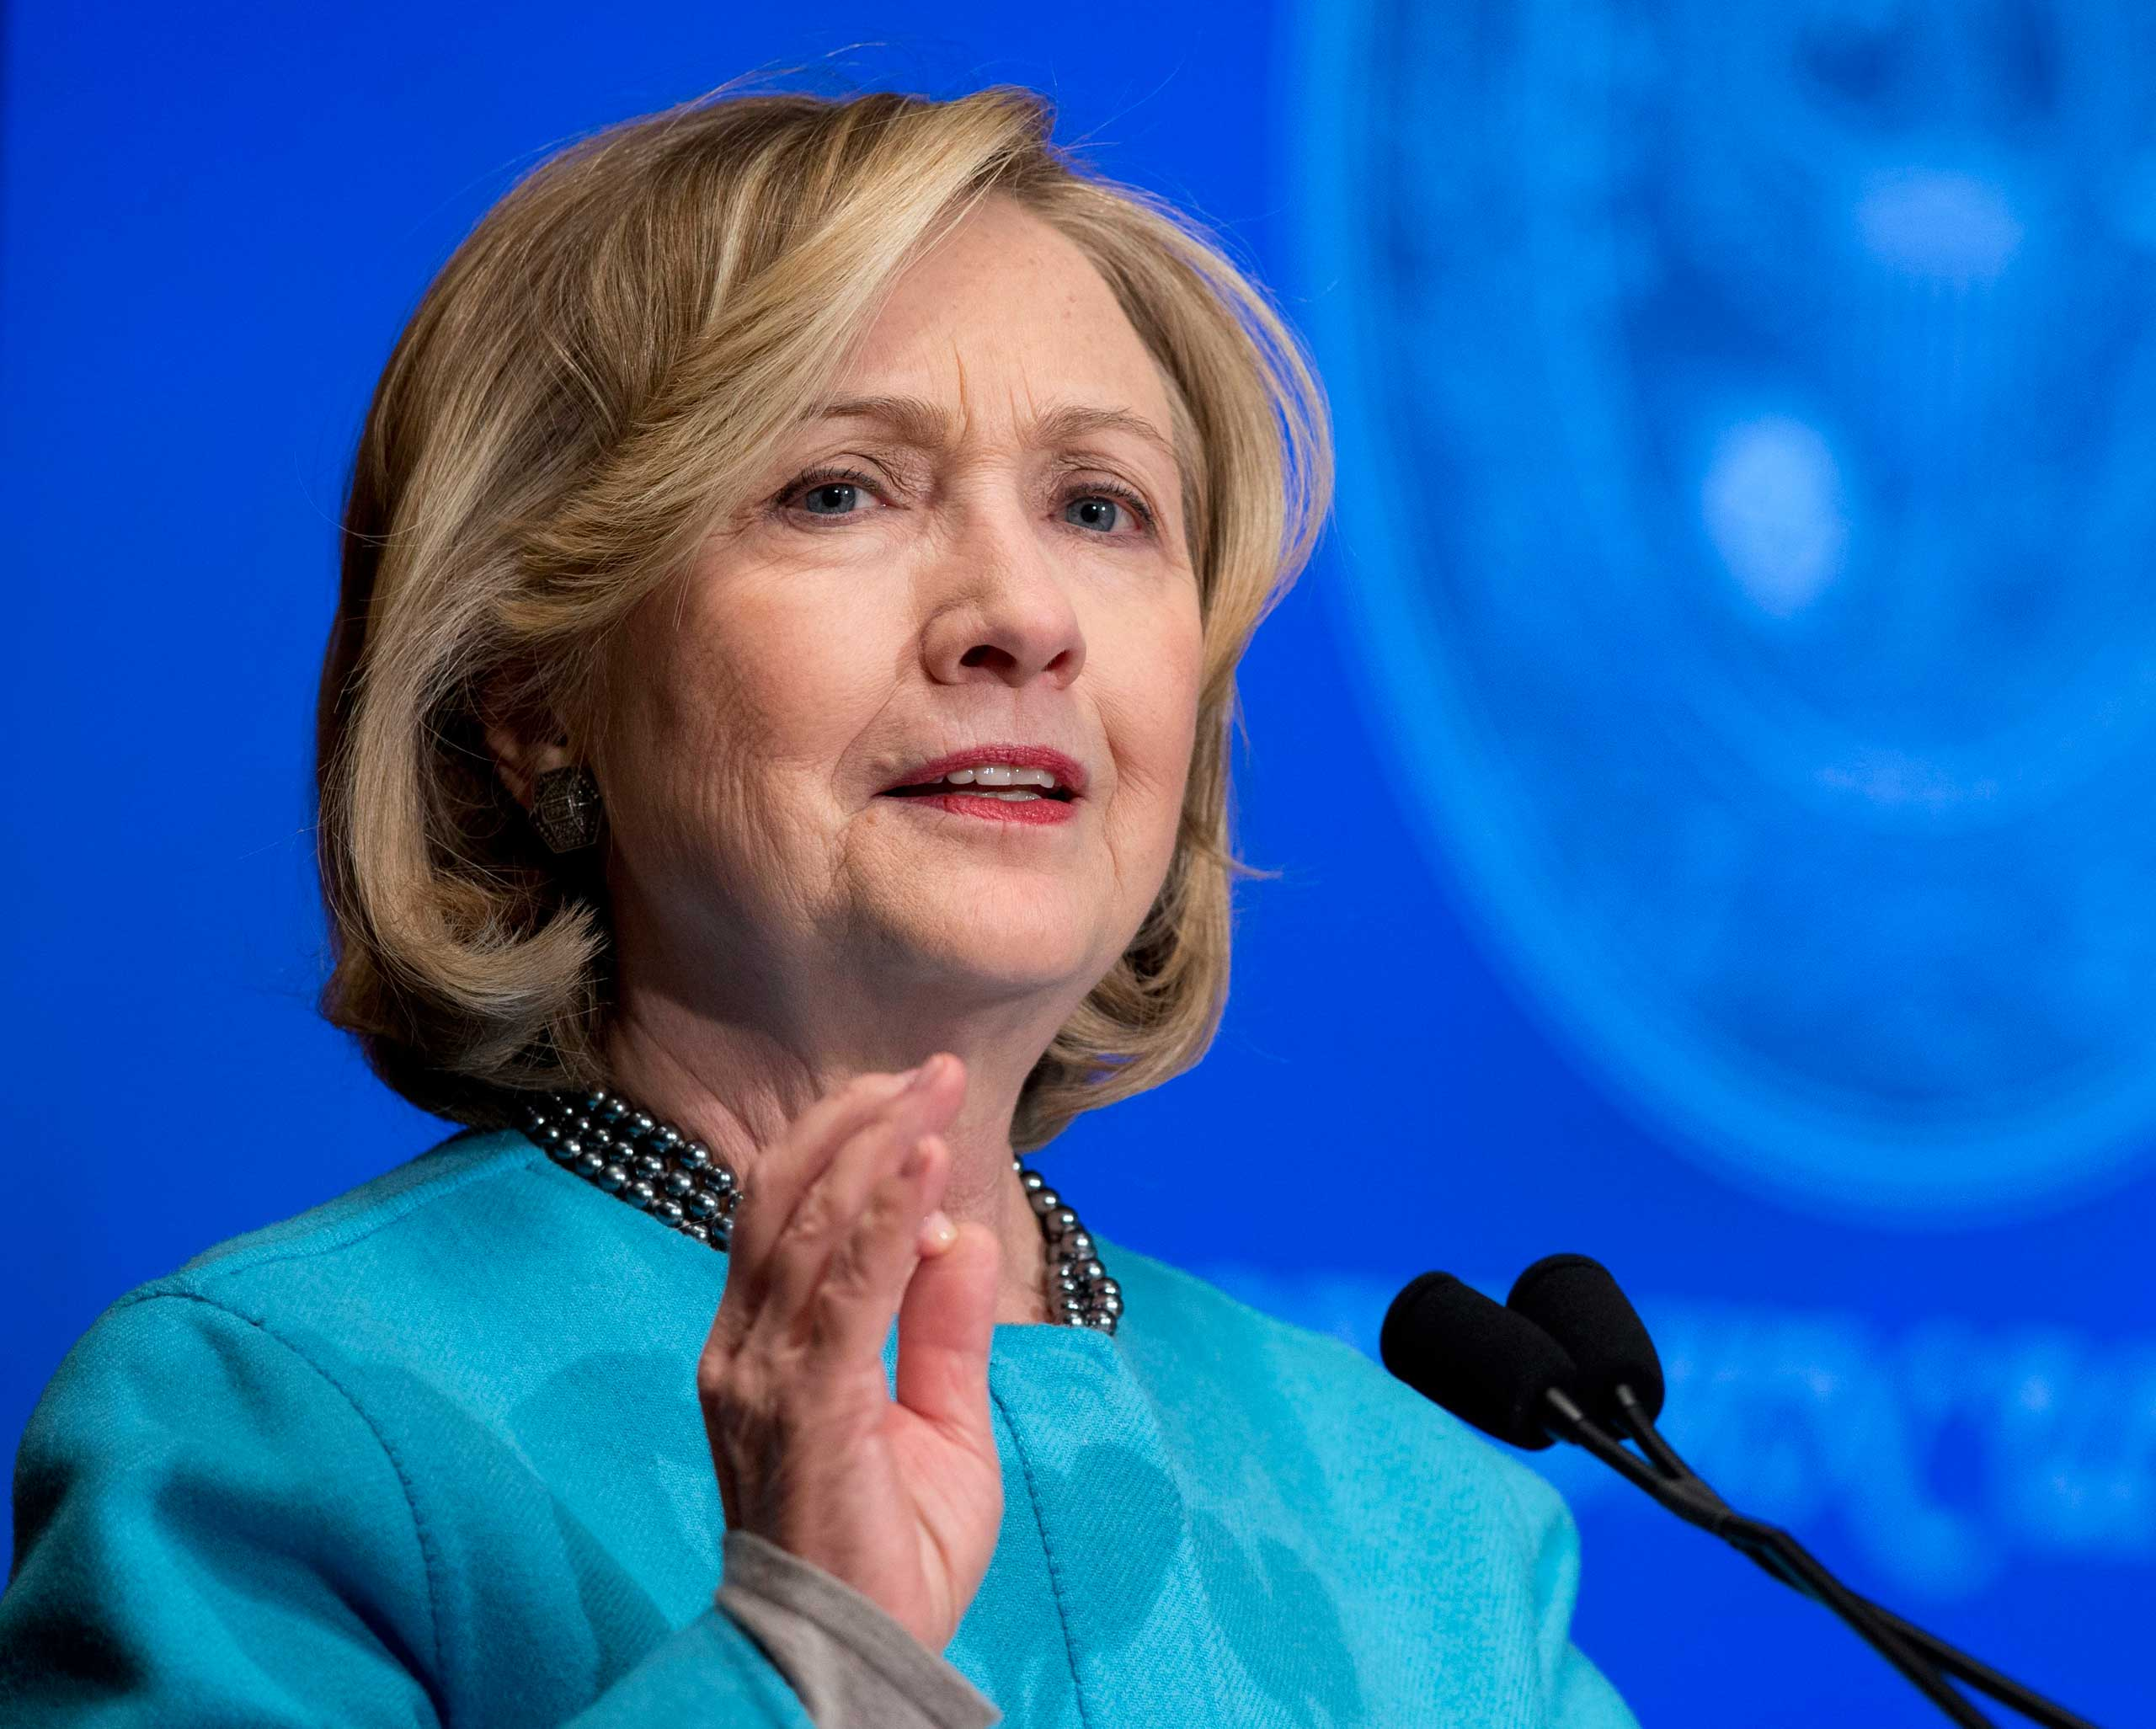 Former Secretary of State Hillary Clinton speaks at Georgetown University in Washington on Dec. 3, 2014.